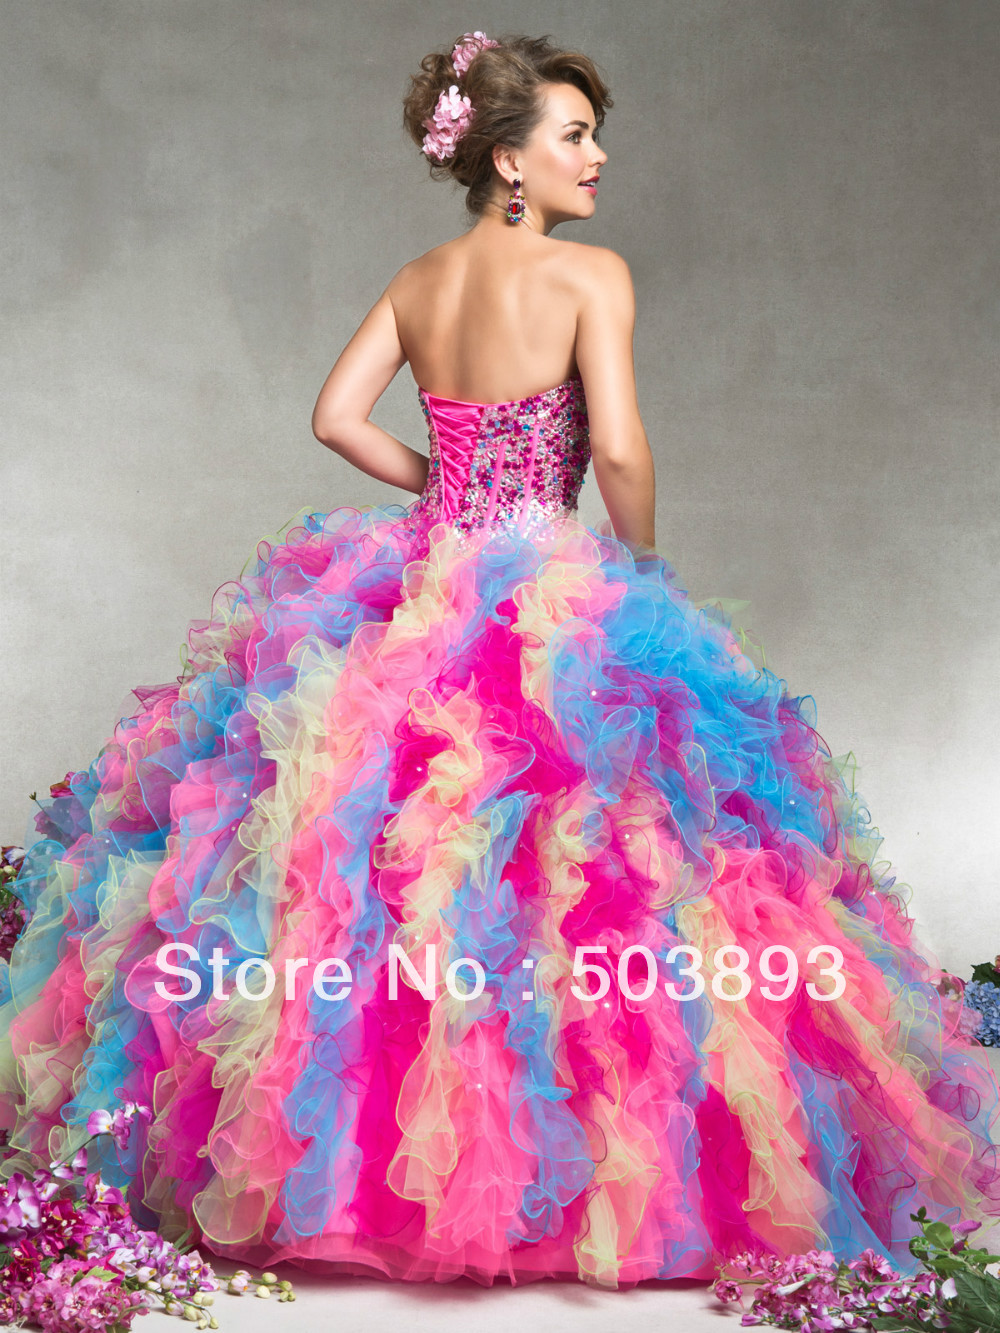 Colorful Sweet 16 Dresses